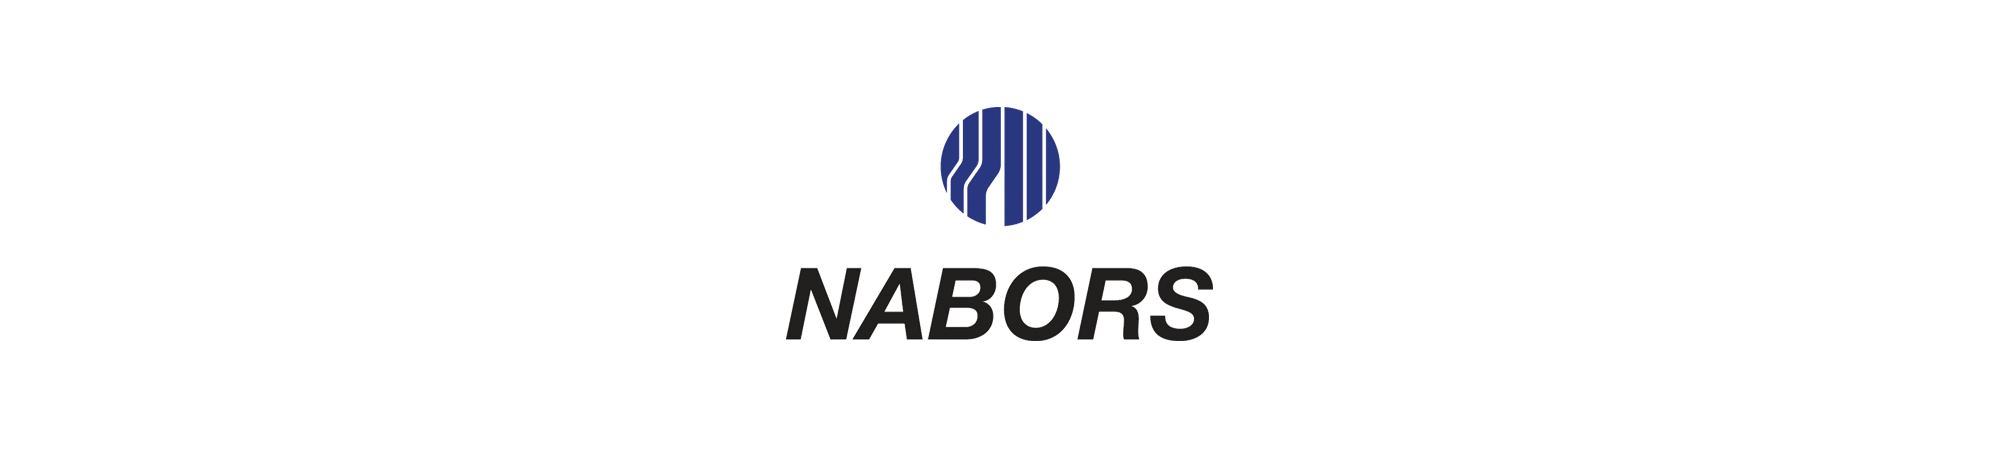 nabors.png